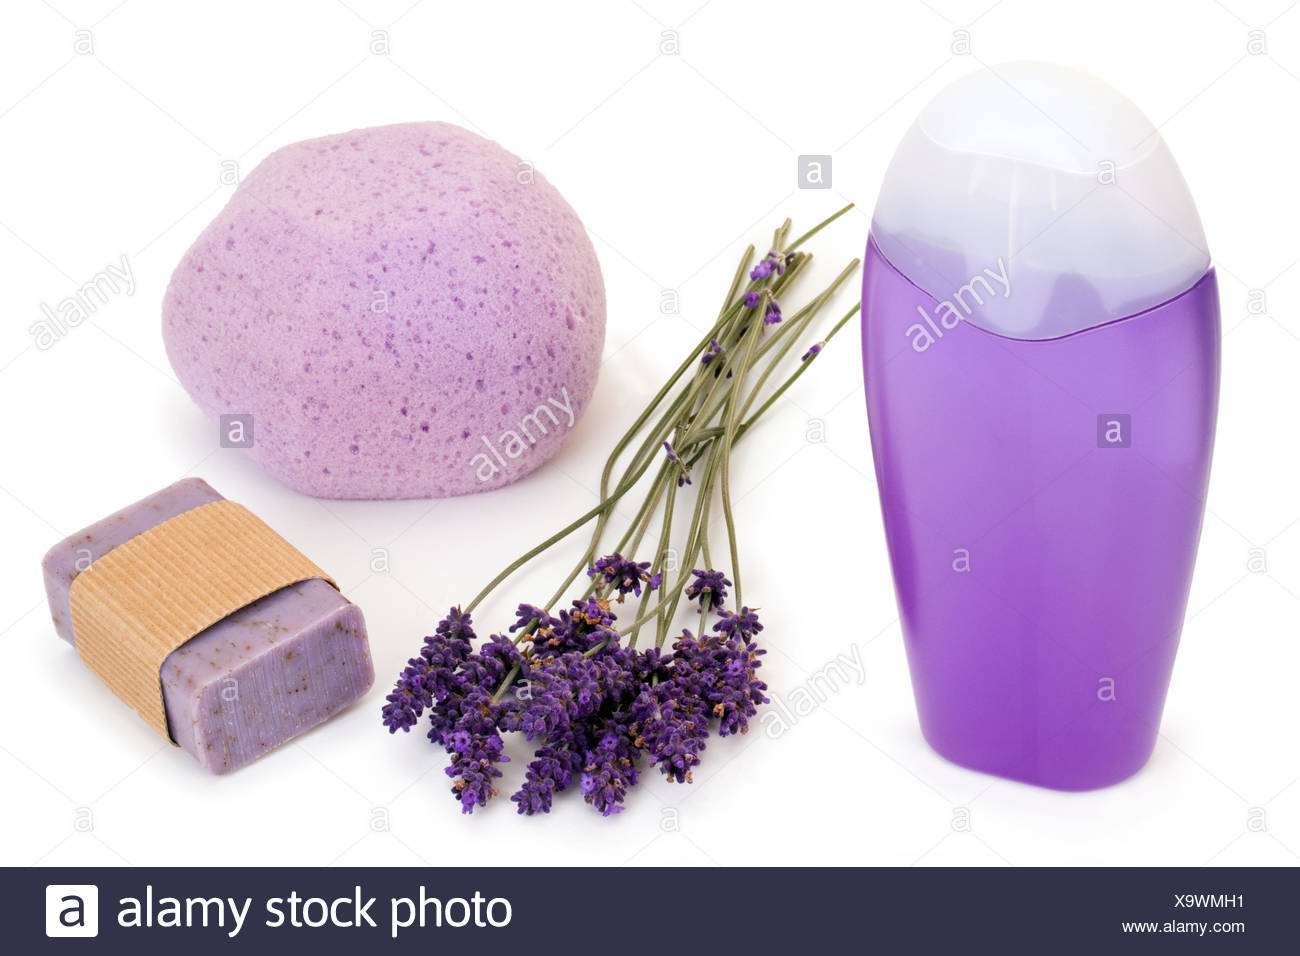 Lavender products - Stock Image